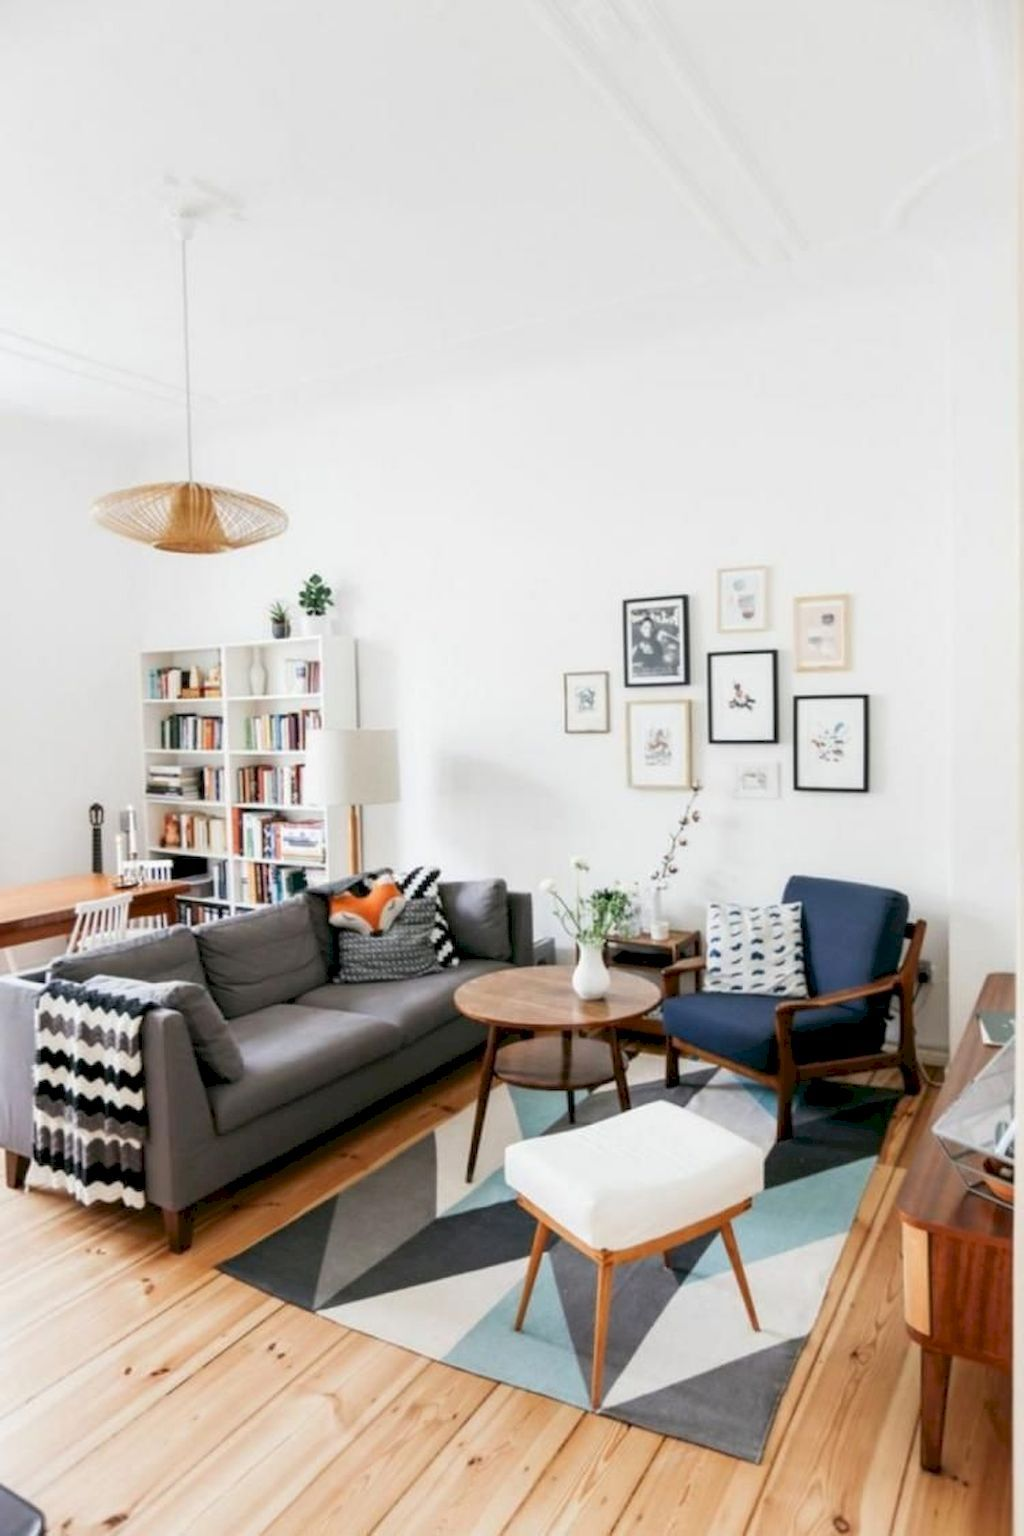 Small Tips And 80 Scandinavian Style Living Room Ideas Https Decorationplan Com Sma Small Modern Living Room Small Living Room Decor Living Room Scandinavian